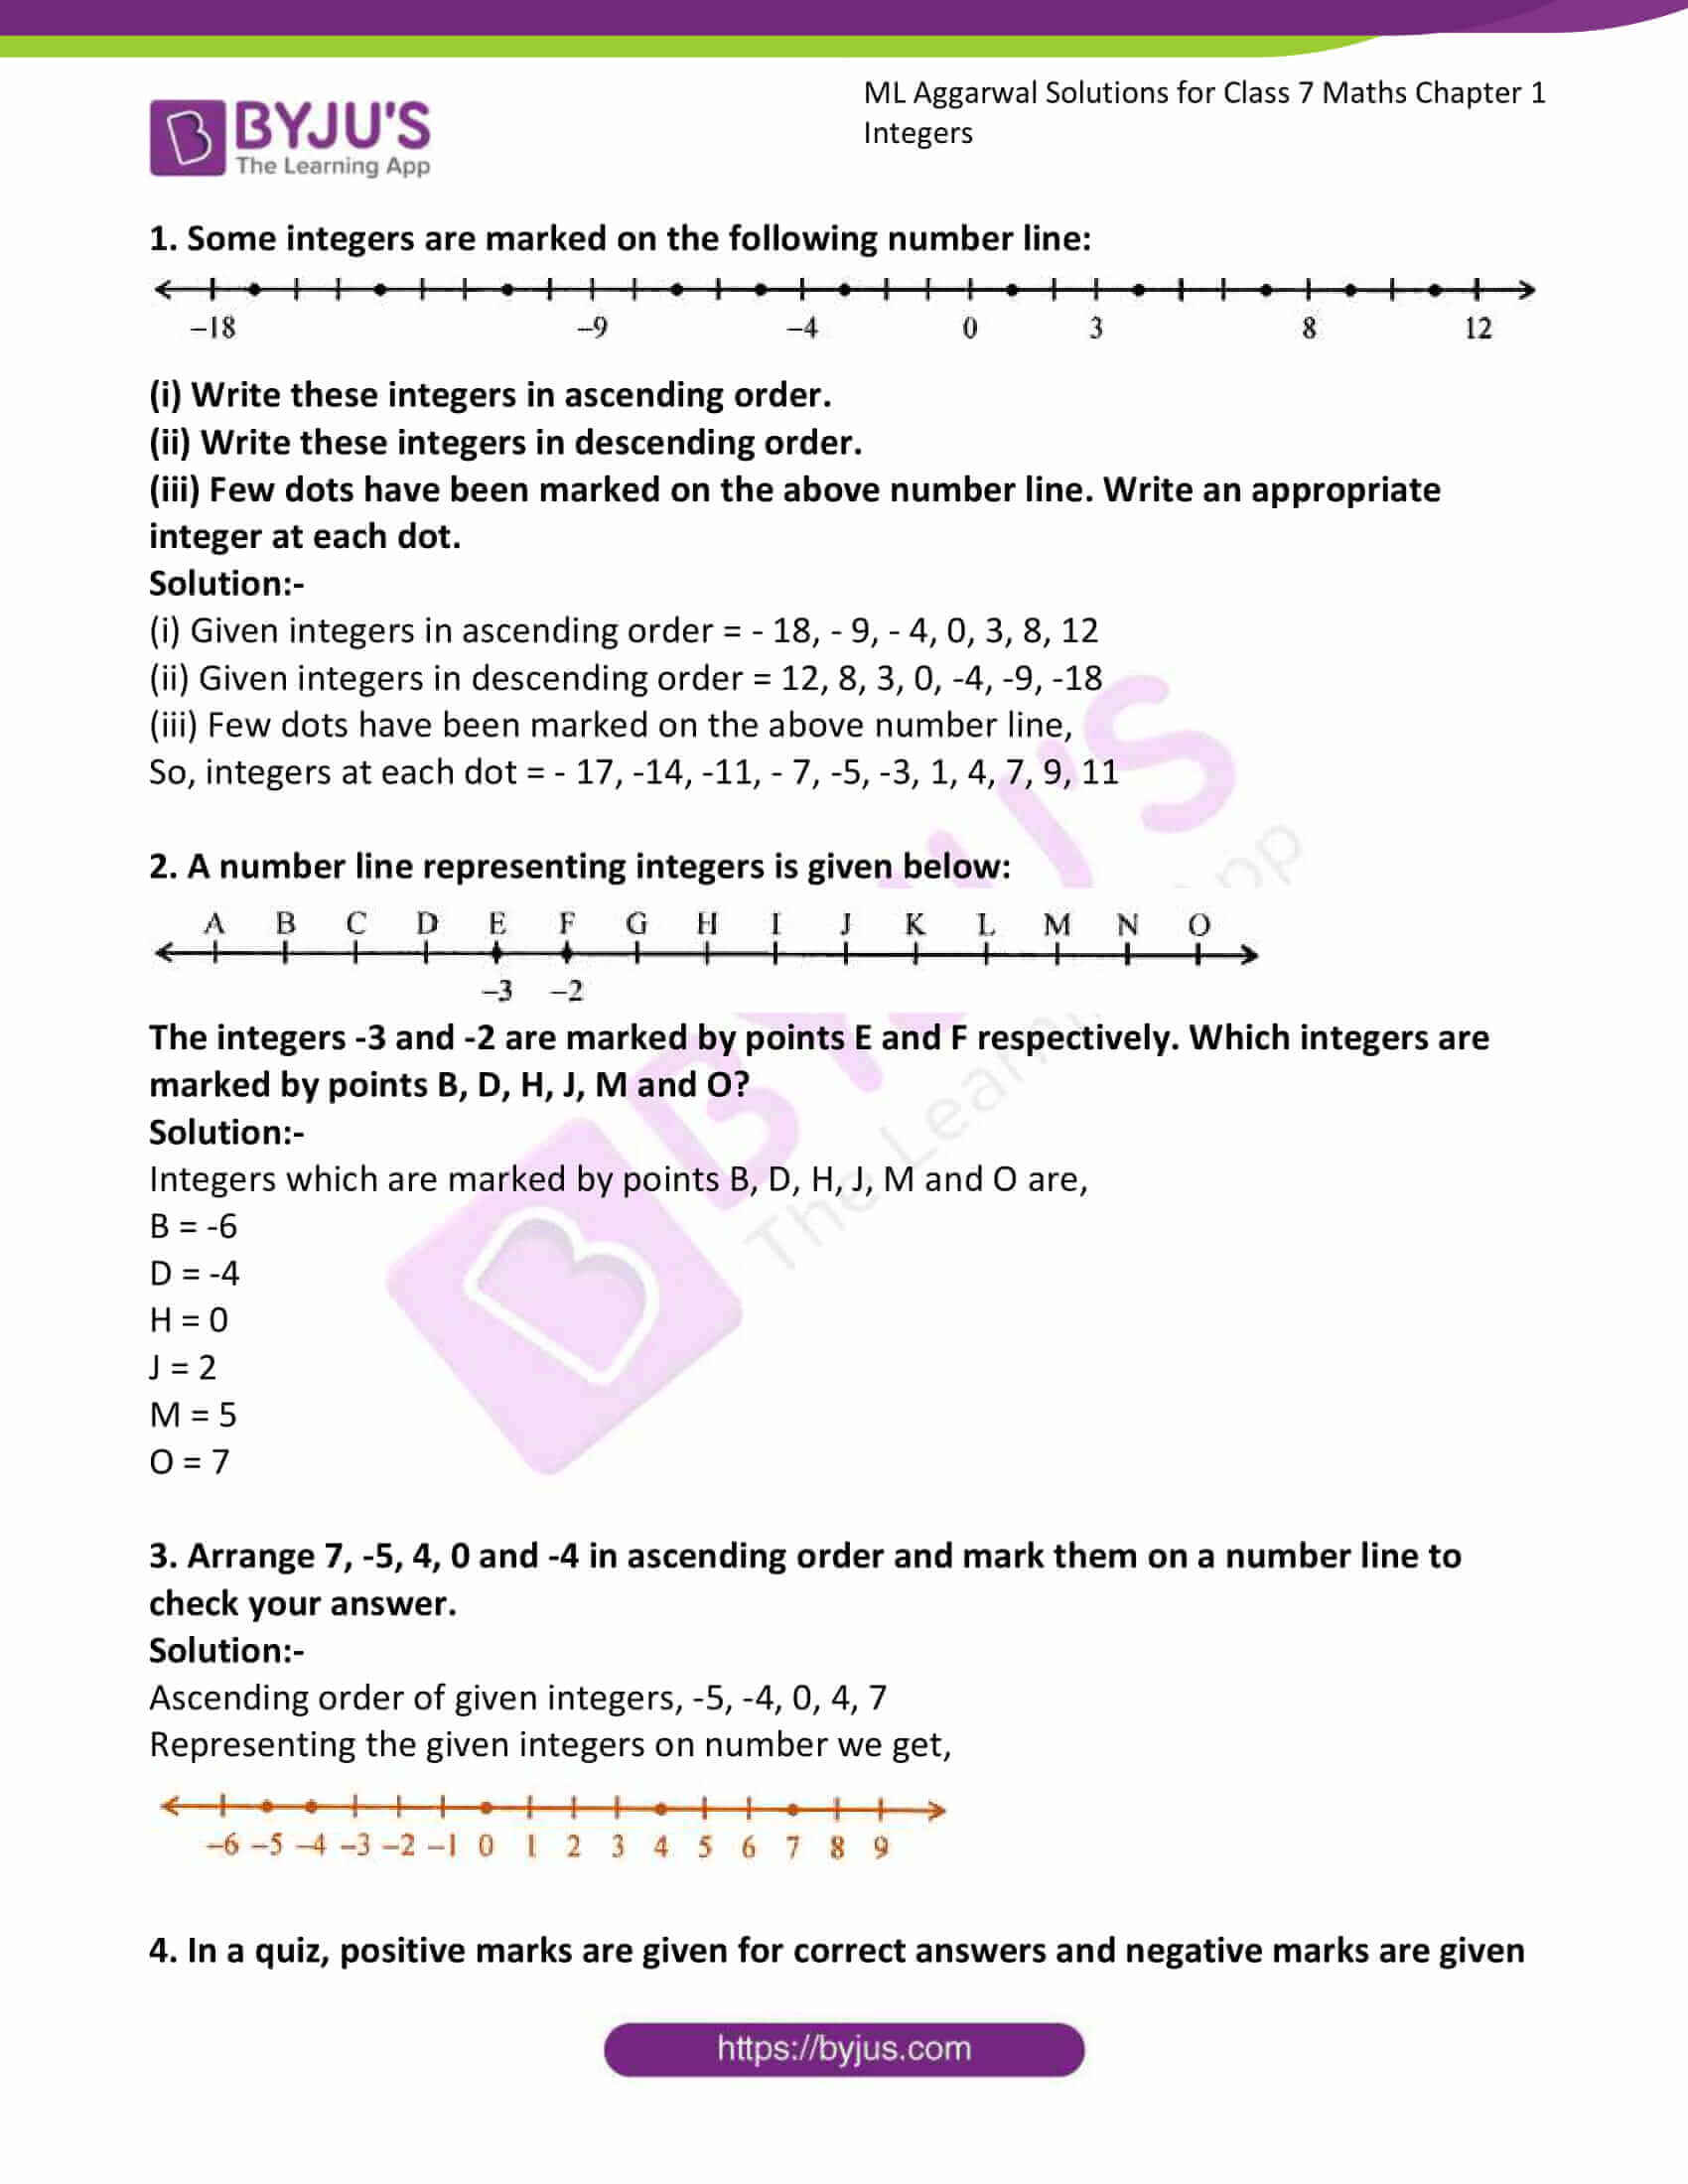 ml aggarwal solutions for class 7 maths chapter 1 1